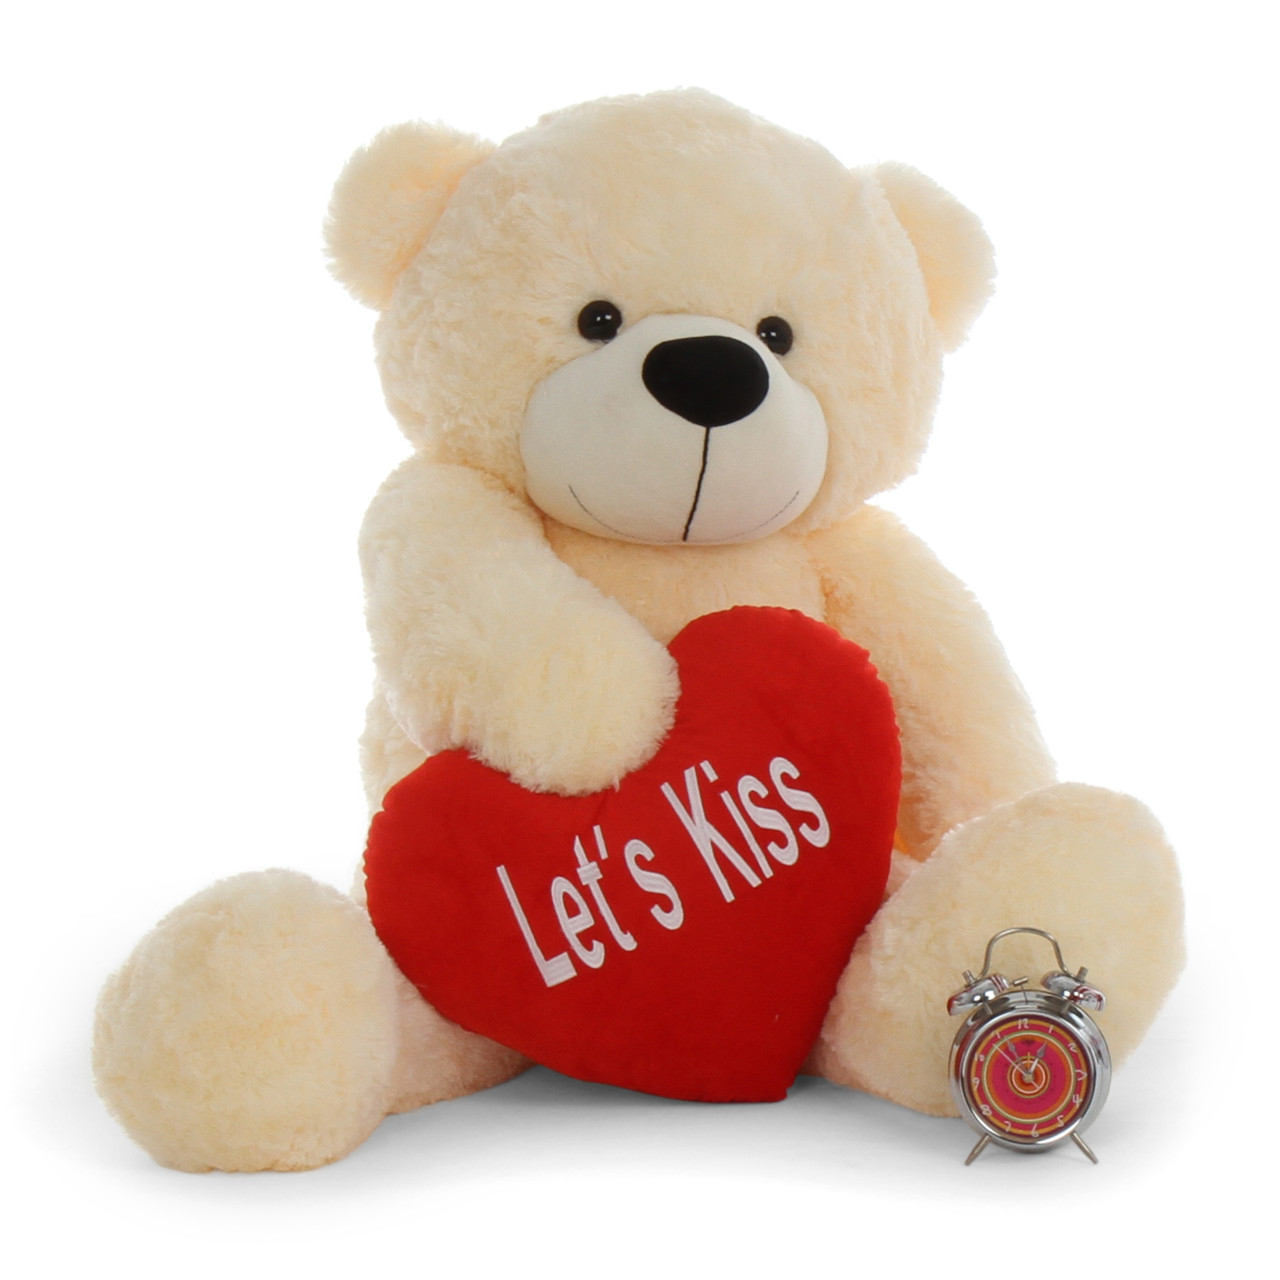 4ft Life Size Teddy Bear For Valentine's Day Cream Cozy